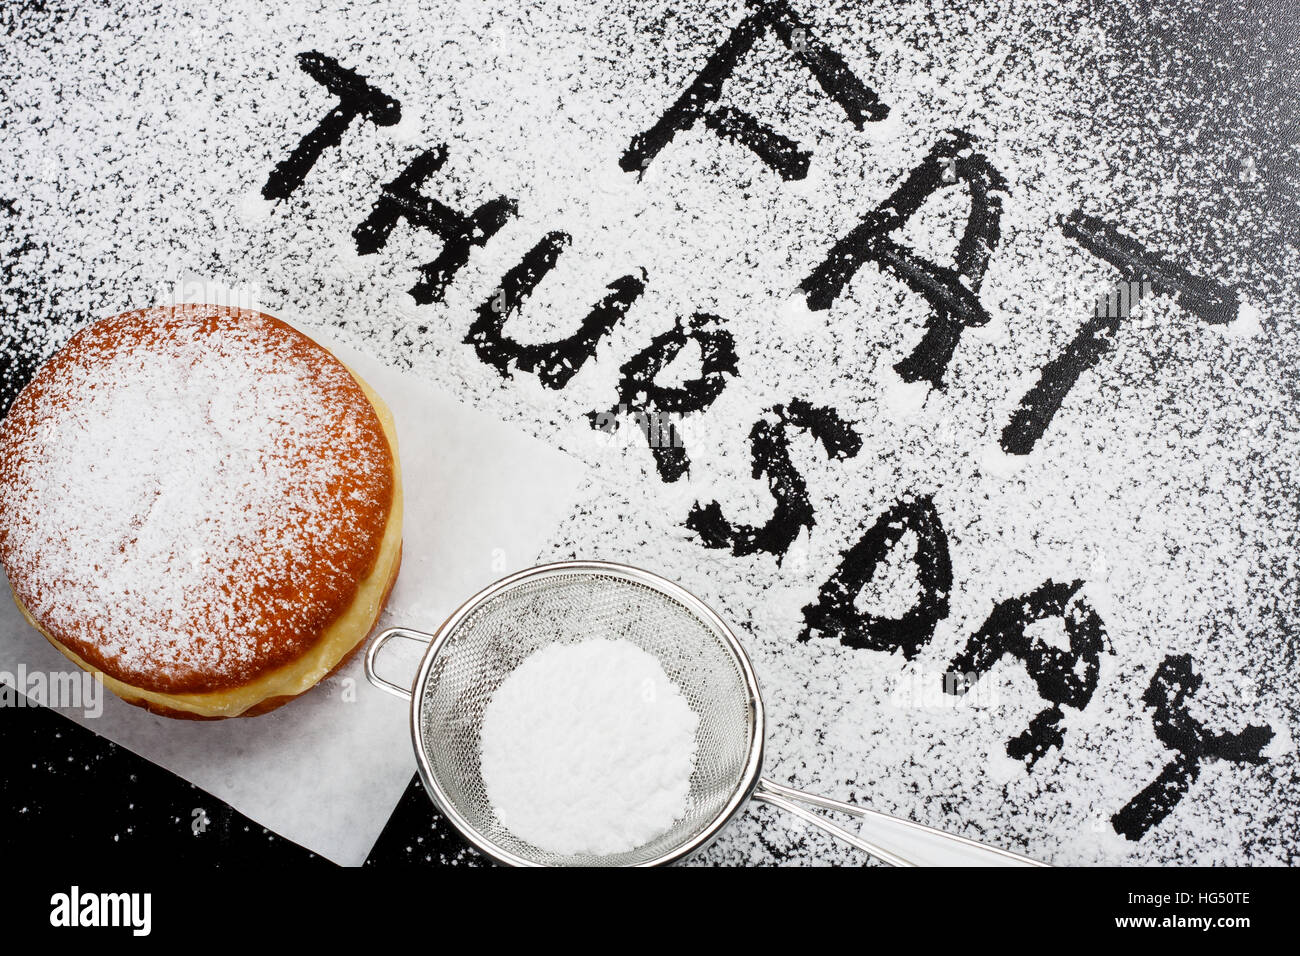 Fat Thursday. Donut and powdered sugar on dark background - Stock Image